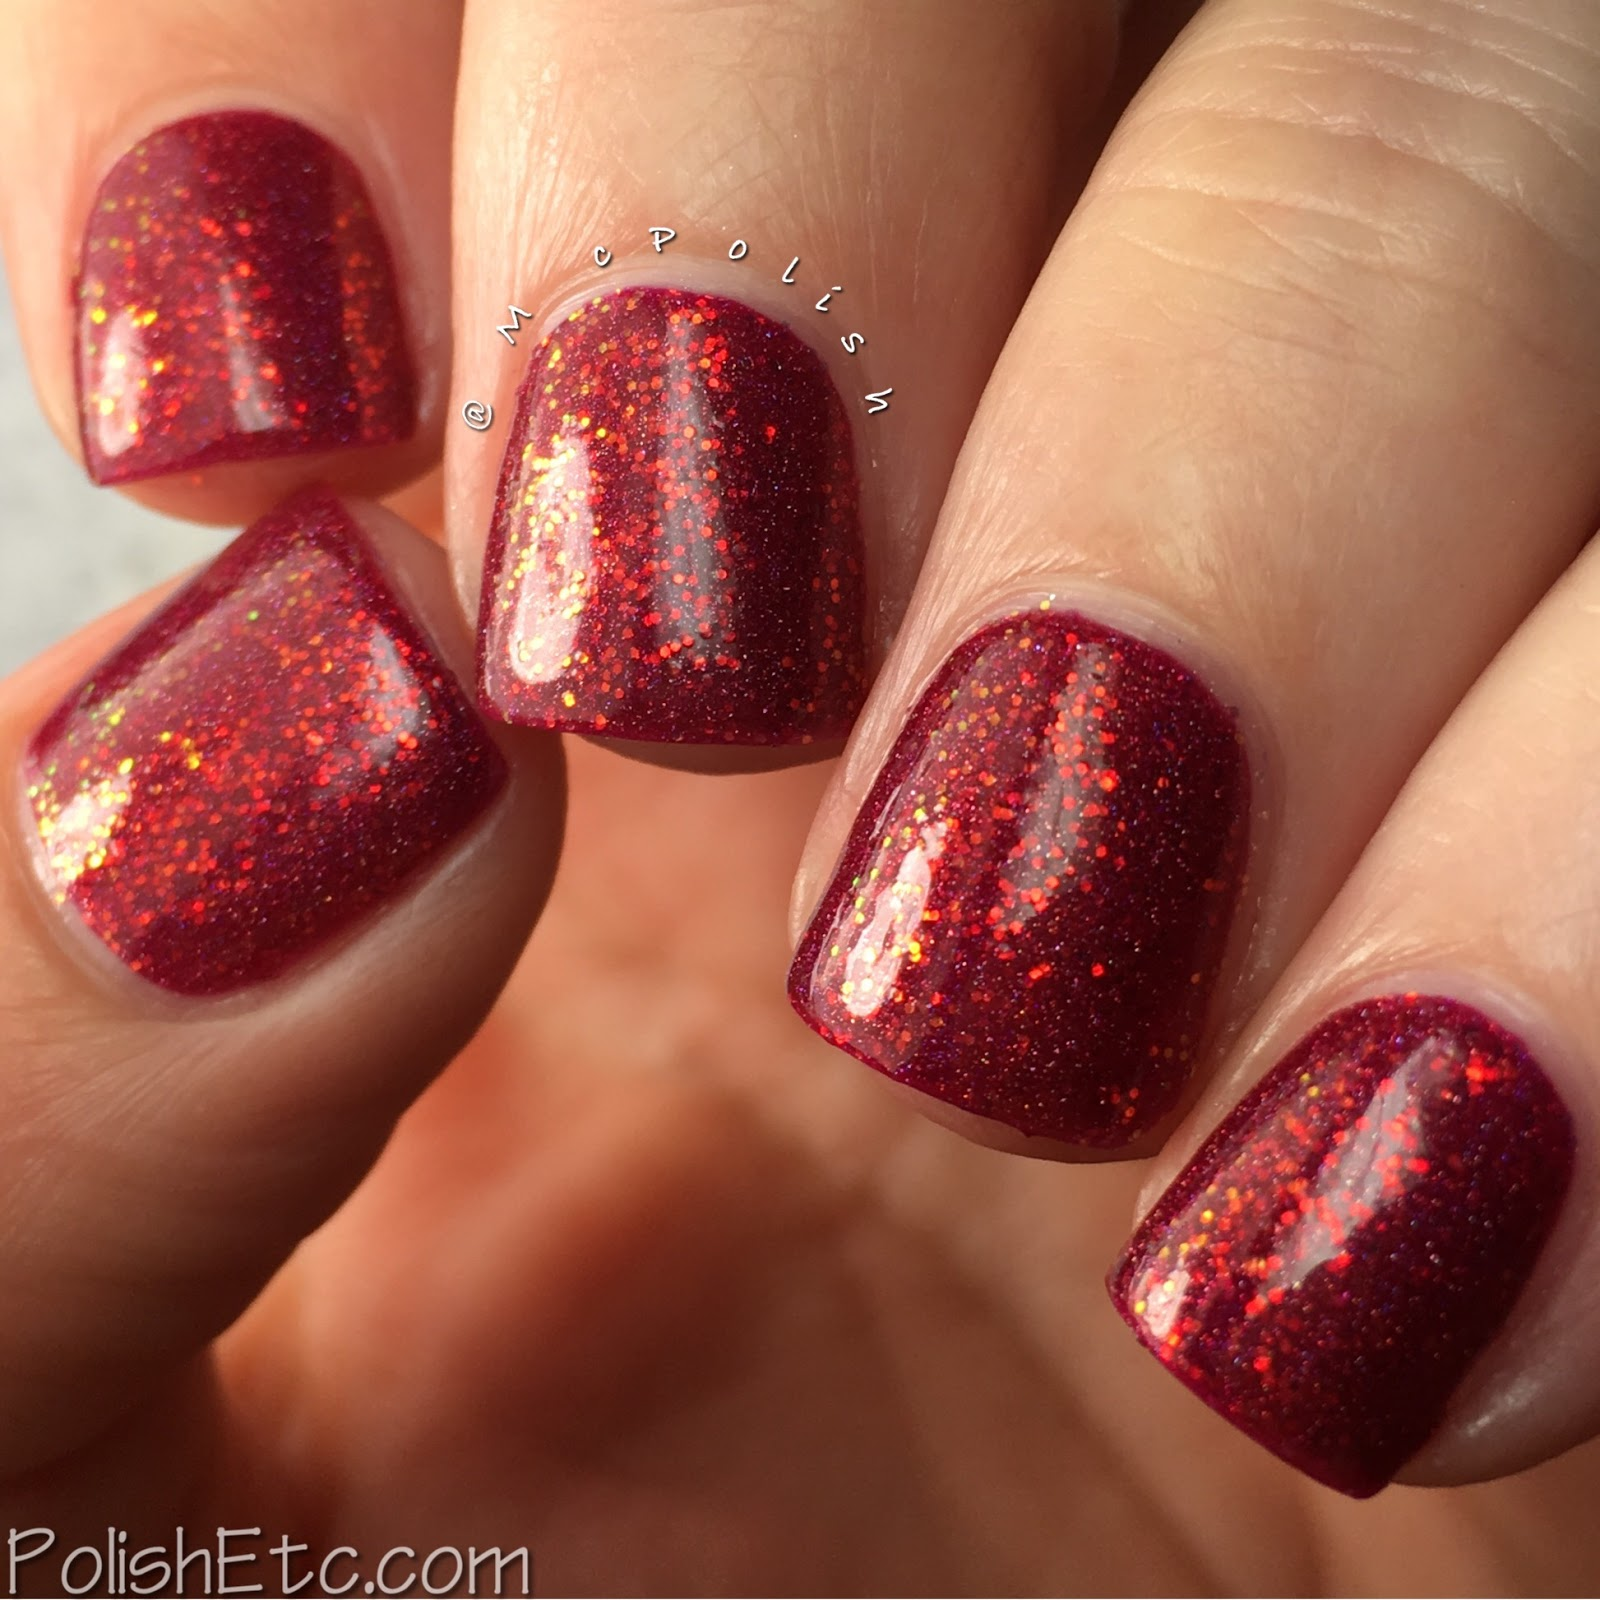 Takko Lacquer - Color4Nails Exclusives - McPolish - Ruby Quartz